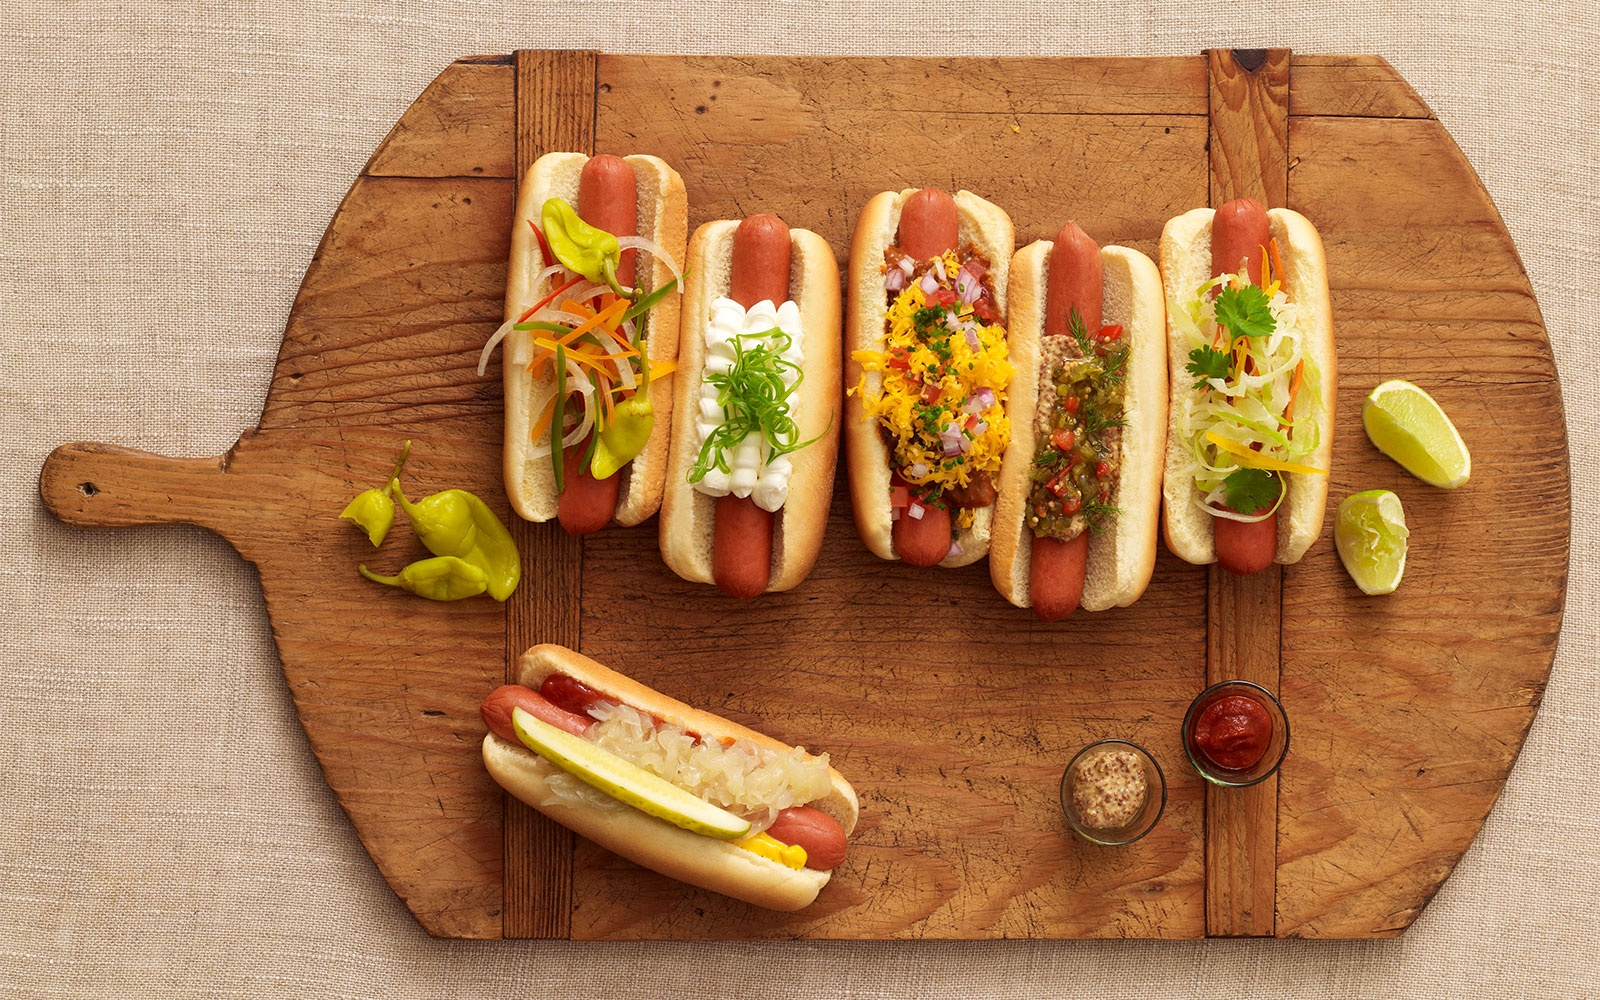 America's 10 Best Places to Eat a Hot Dog